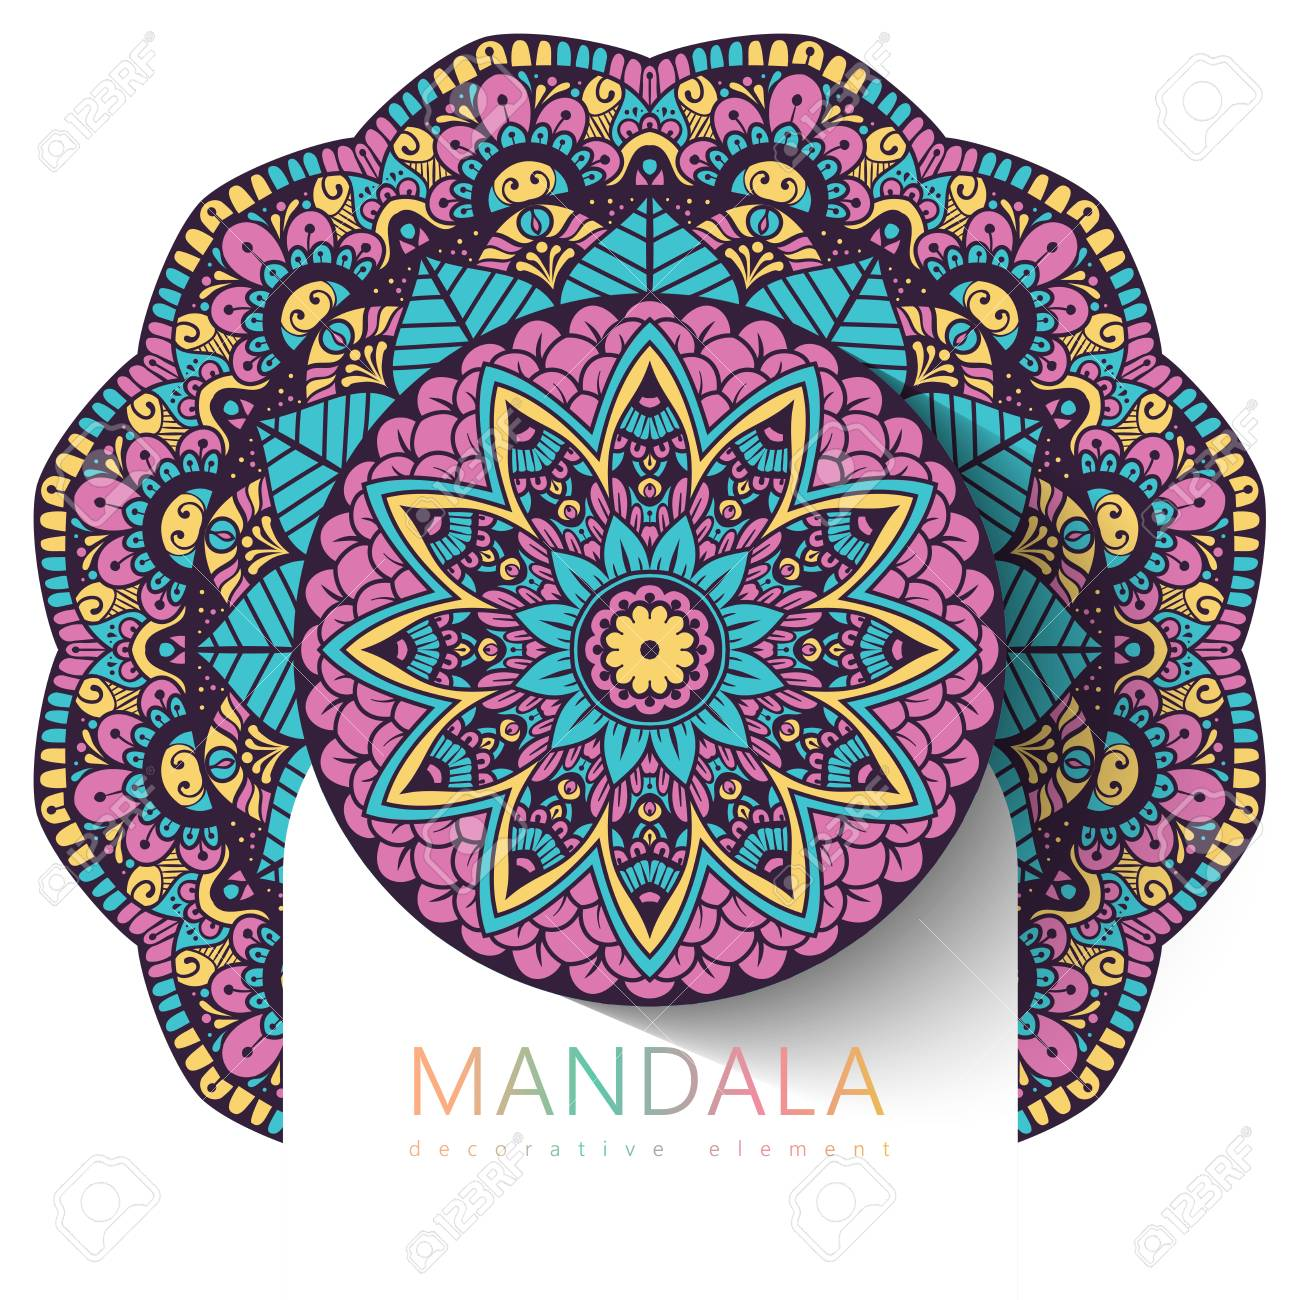 Vector round abstract circle. Mandala style. Decorative element, colored circular design element. Sticker effect. - 122489403